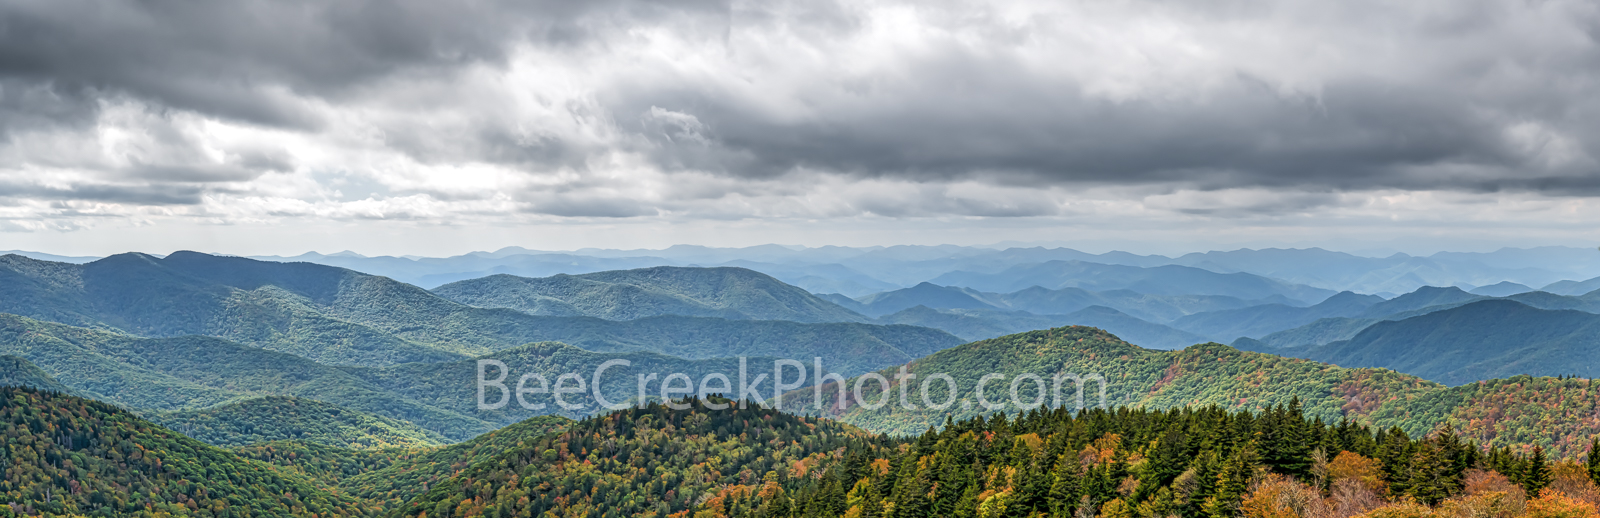 Shadows over Blue Ridge Mountains Pano  - The day did not disappoint with these cloudy skies casting shadows across the blue...